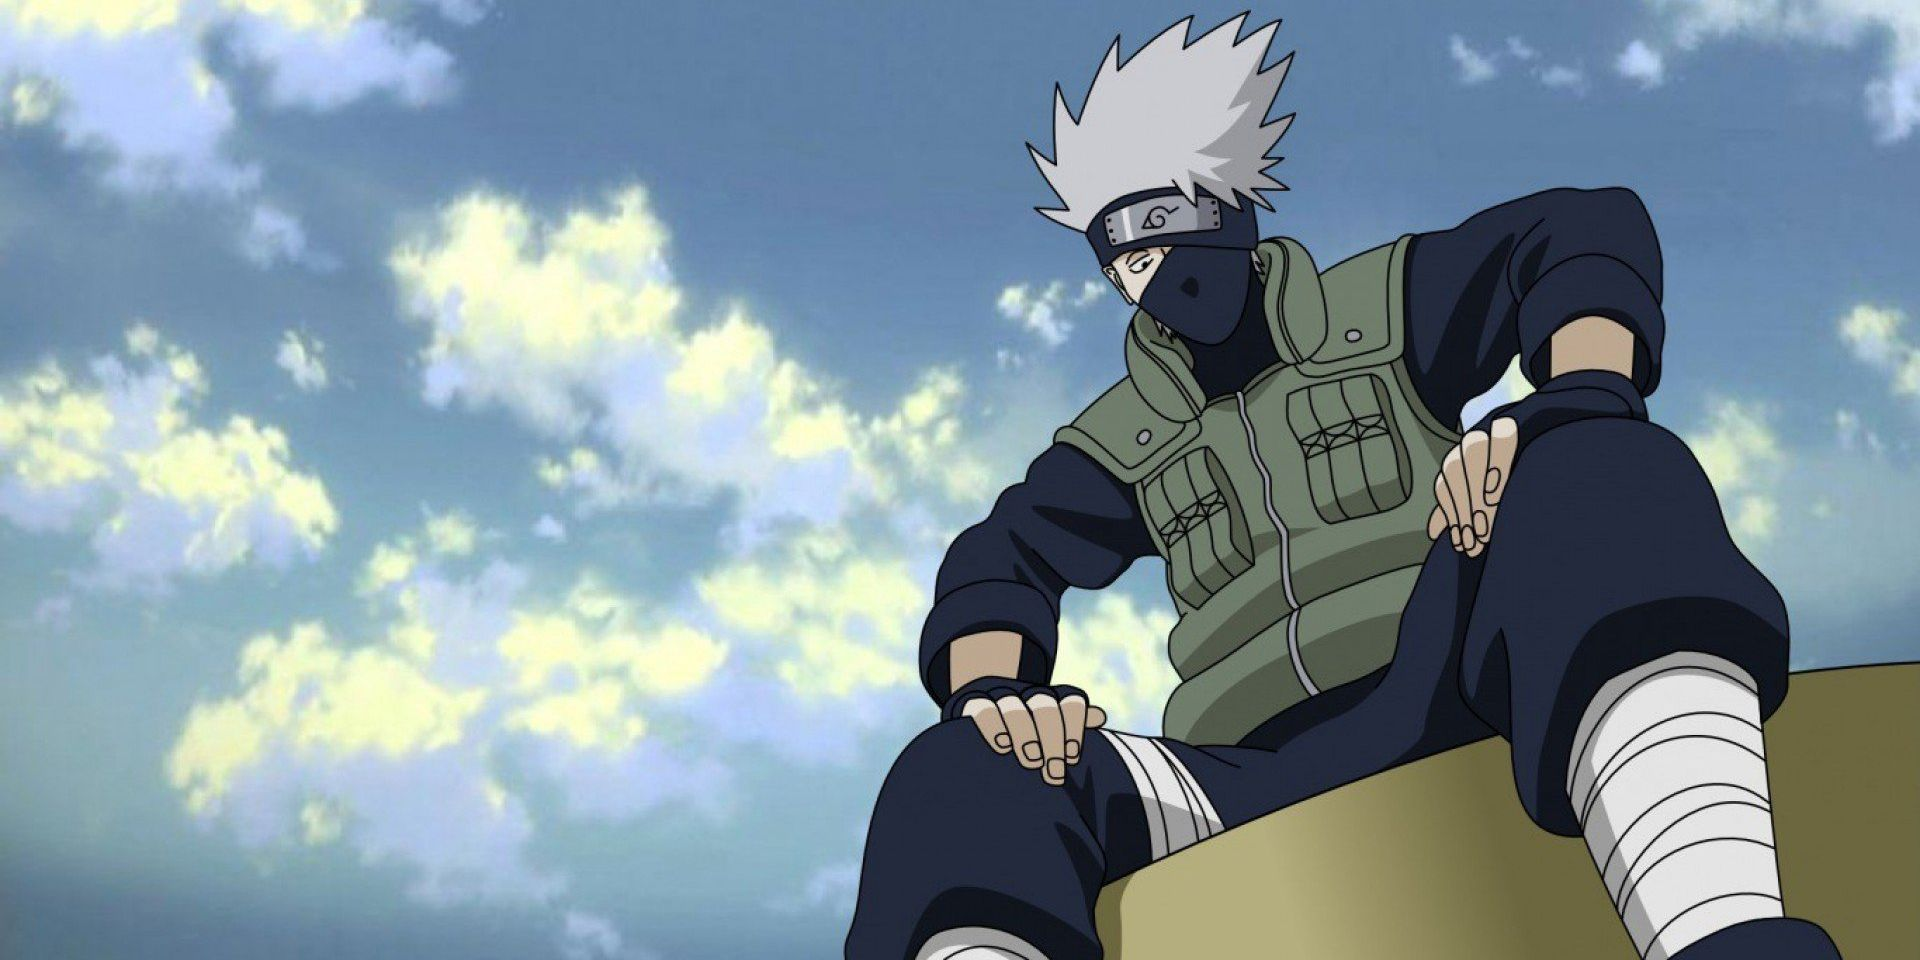 Naruto: Every Major Clan Ranked, From Weakest To Strongest